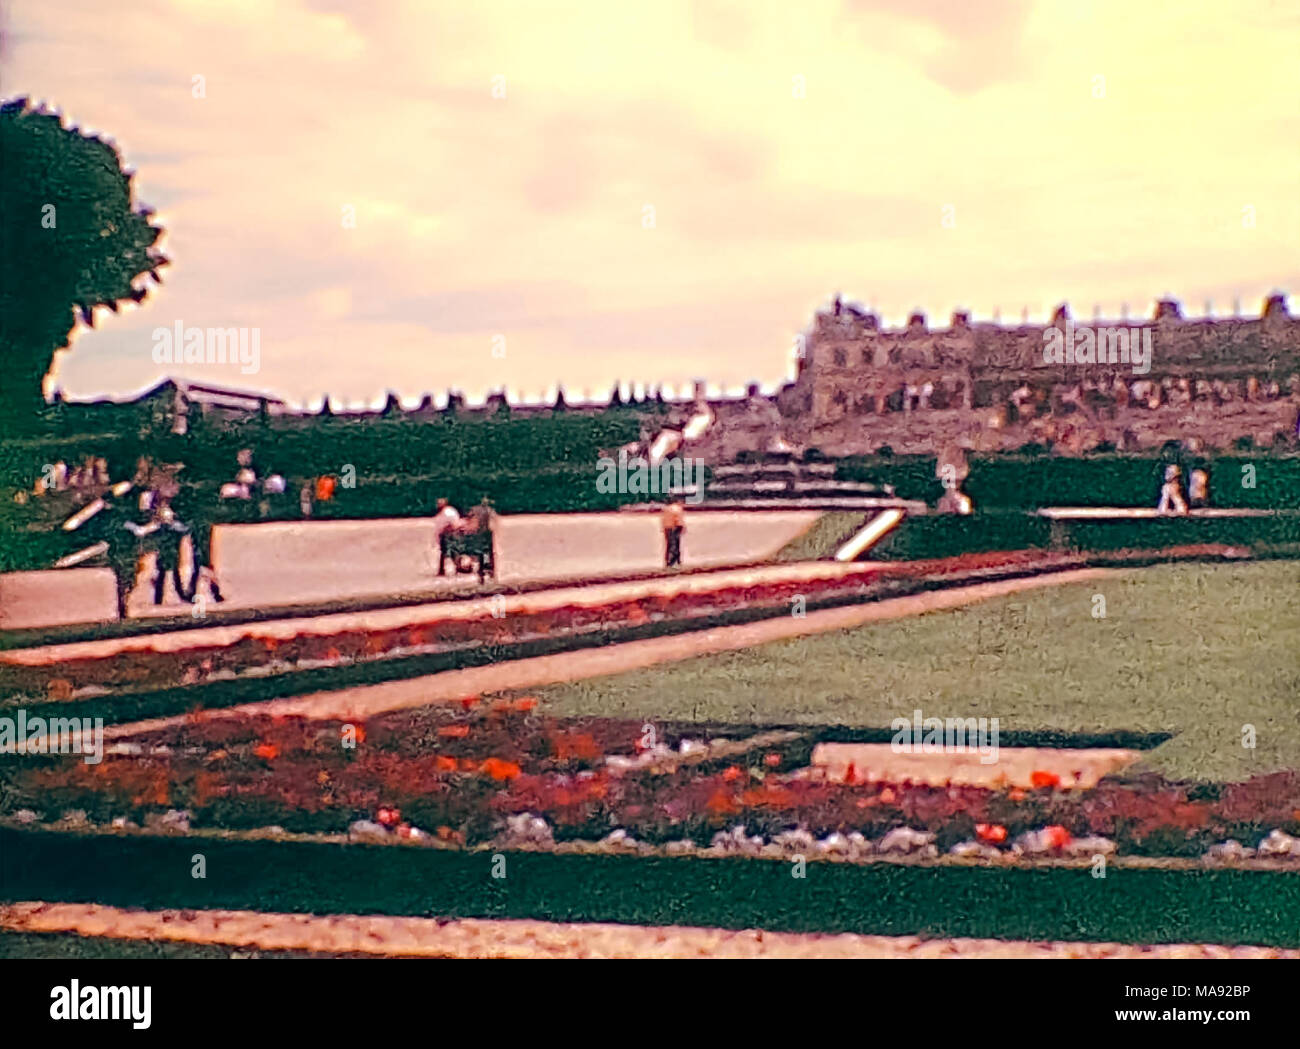 Parisian palace of Versailles in the Versailles garden from Paris in 1976. Historic archival footage in Paris city of France in 1970s. - Stock Image